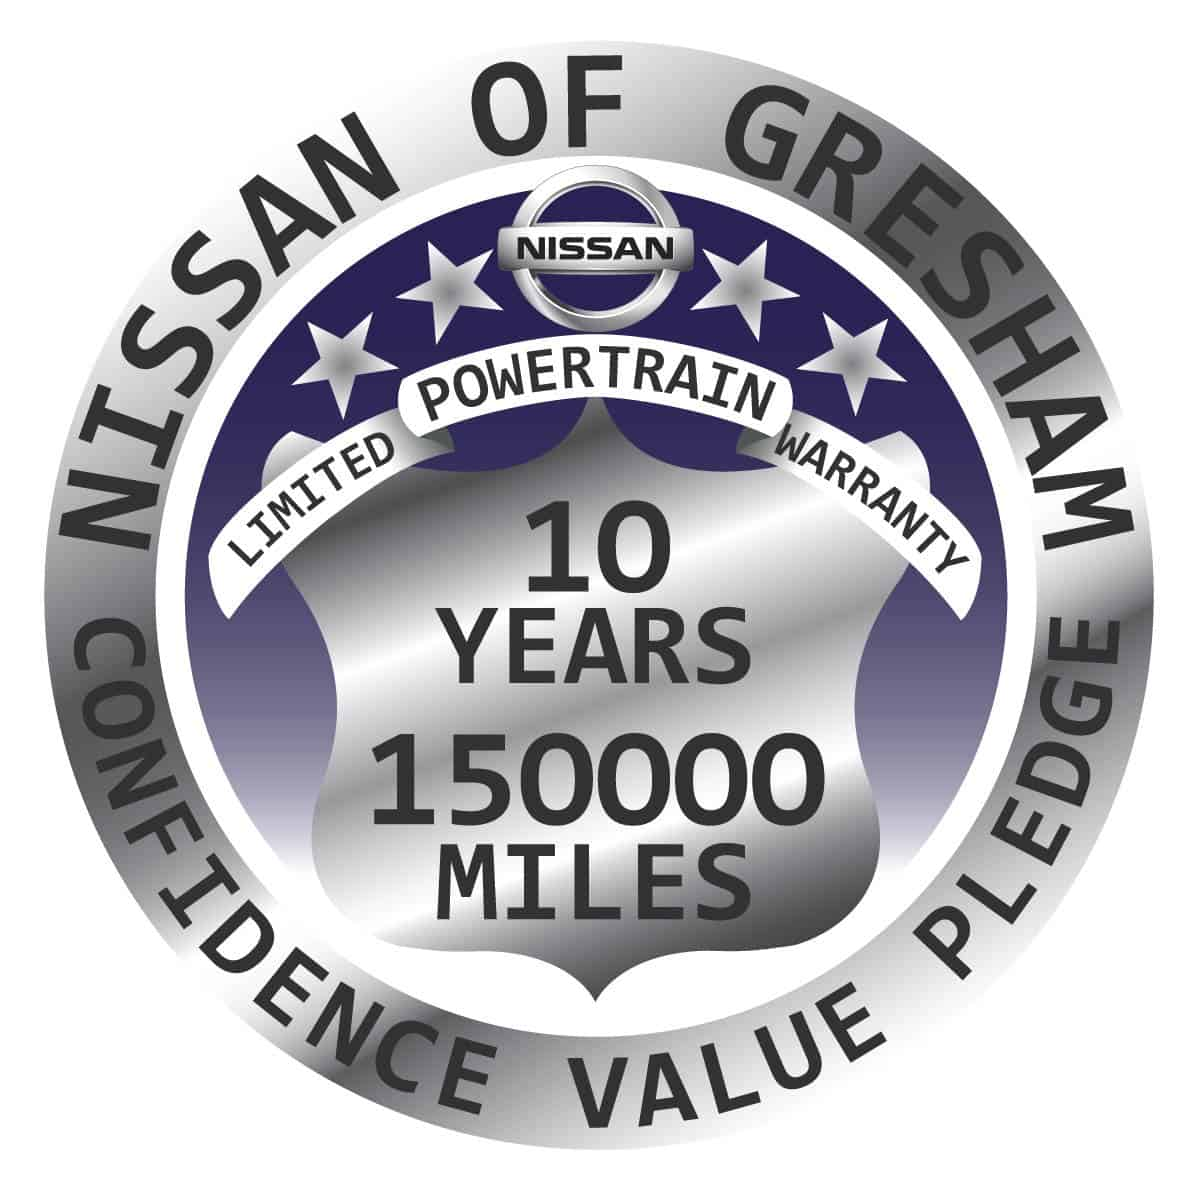 Nissan of Gresham